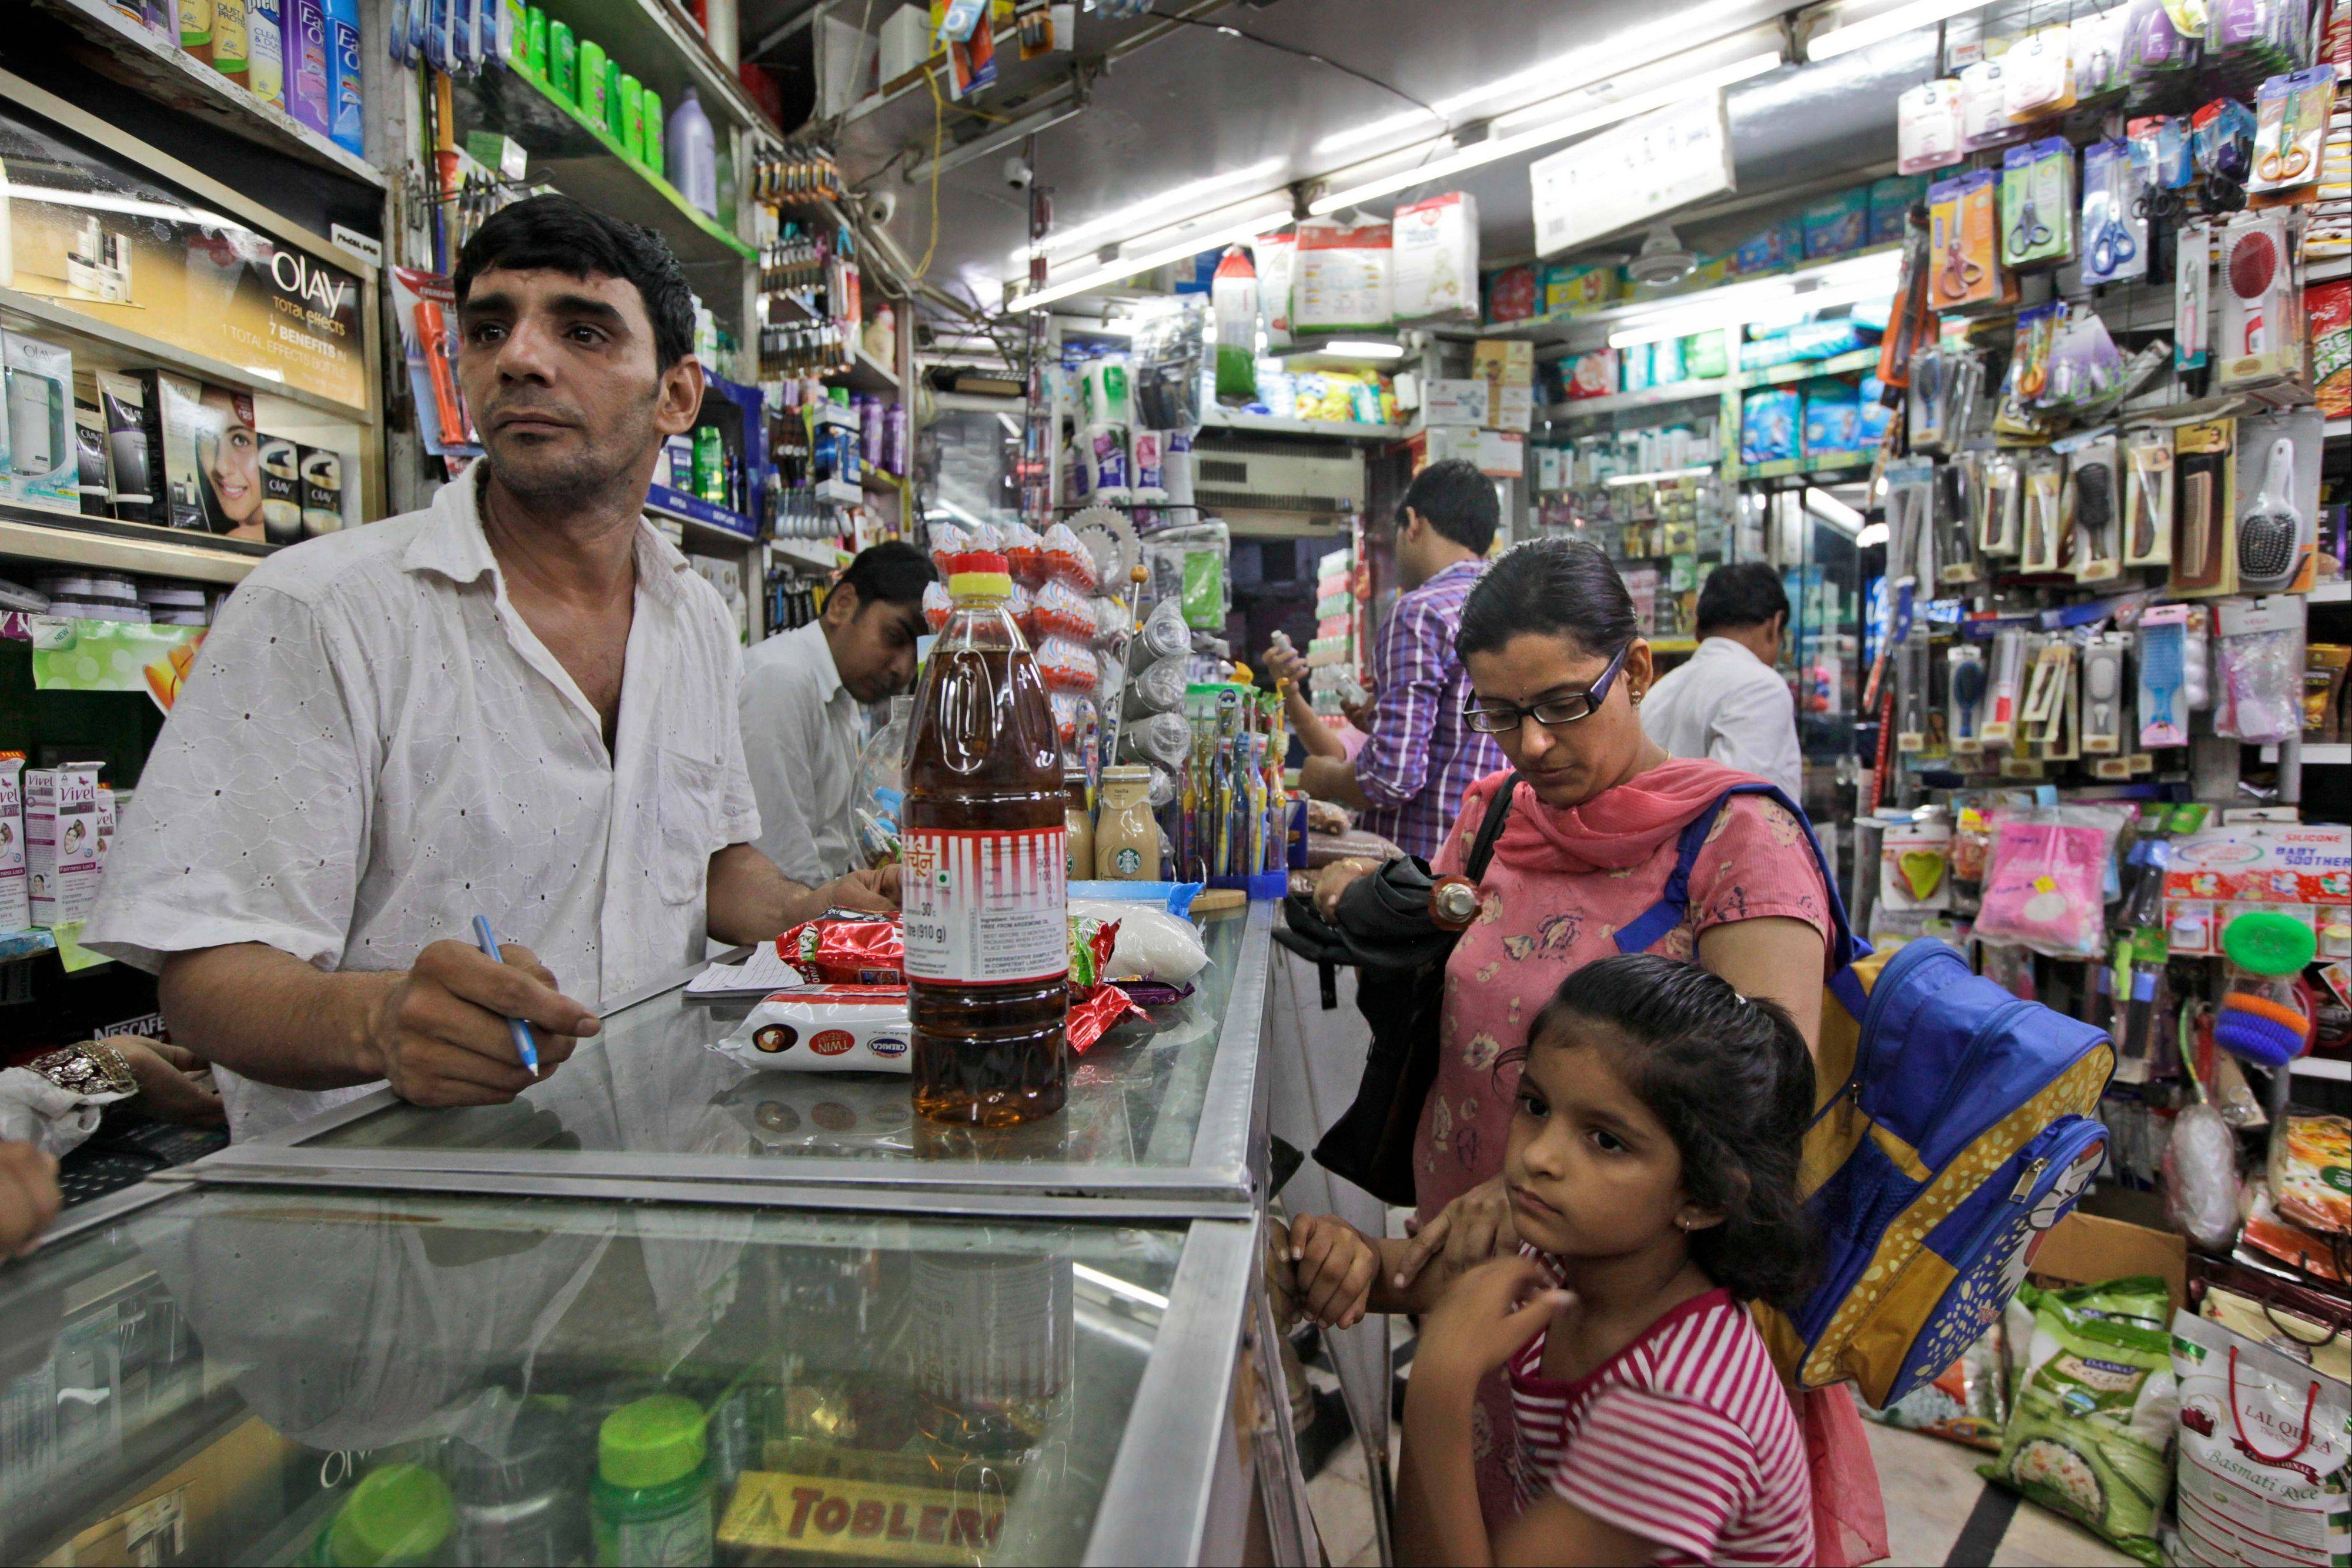 A young Indian girl with her mother waits for her order at a store, in New Delhi. India agreed Friday to open its huge market to foreign retailers such as Wal-Mart as part of a flurry of economic reforms aimed at sparking new growth in the country's sputtering economy.